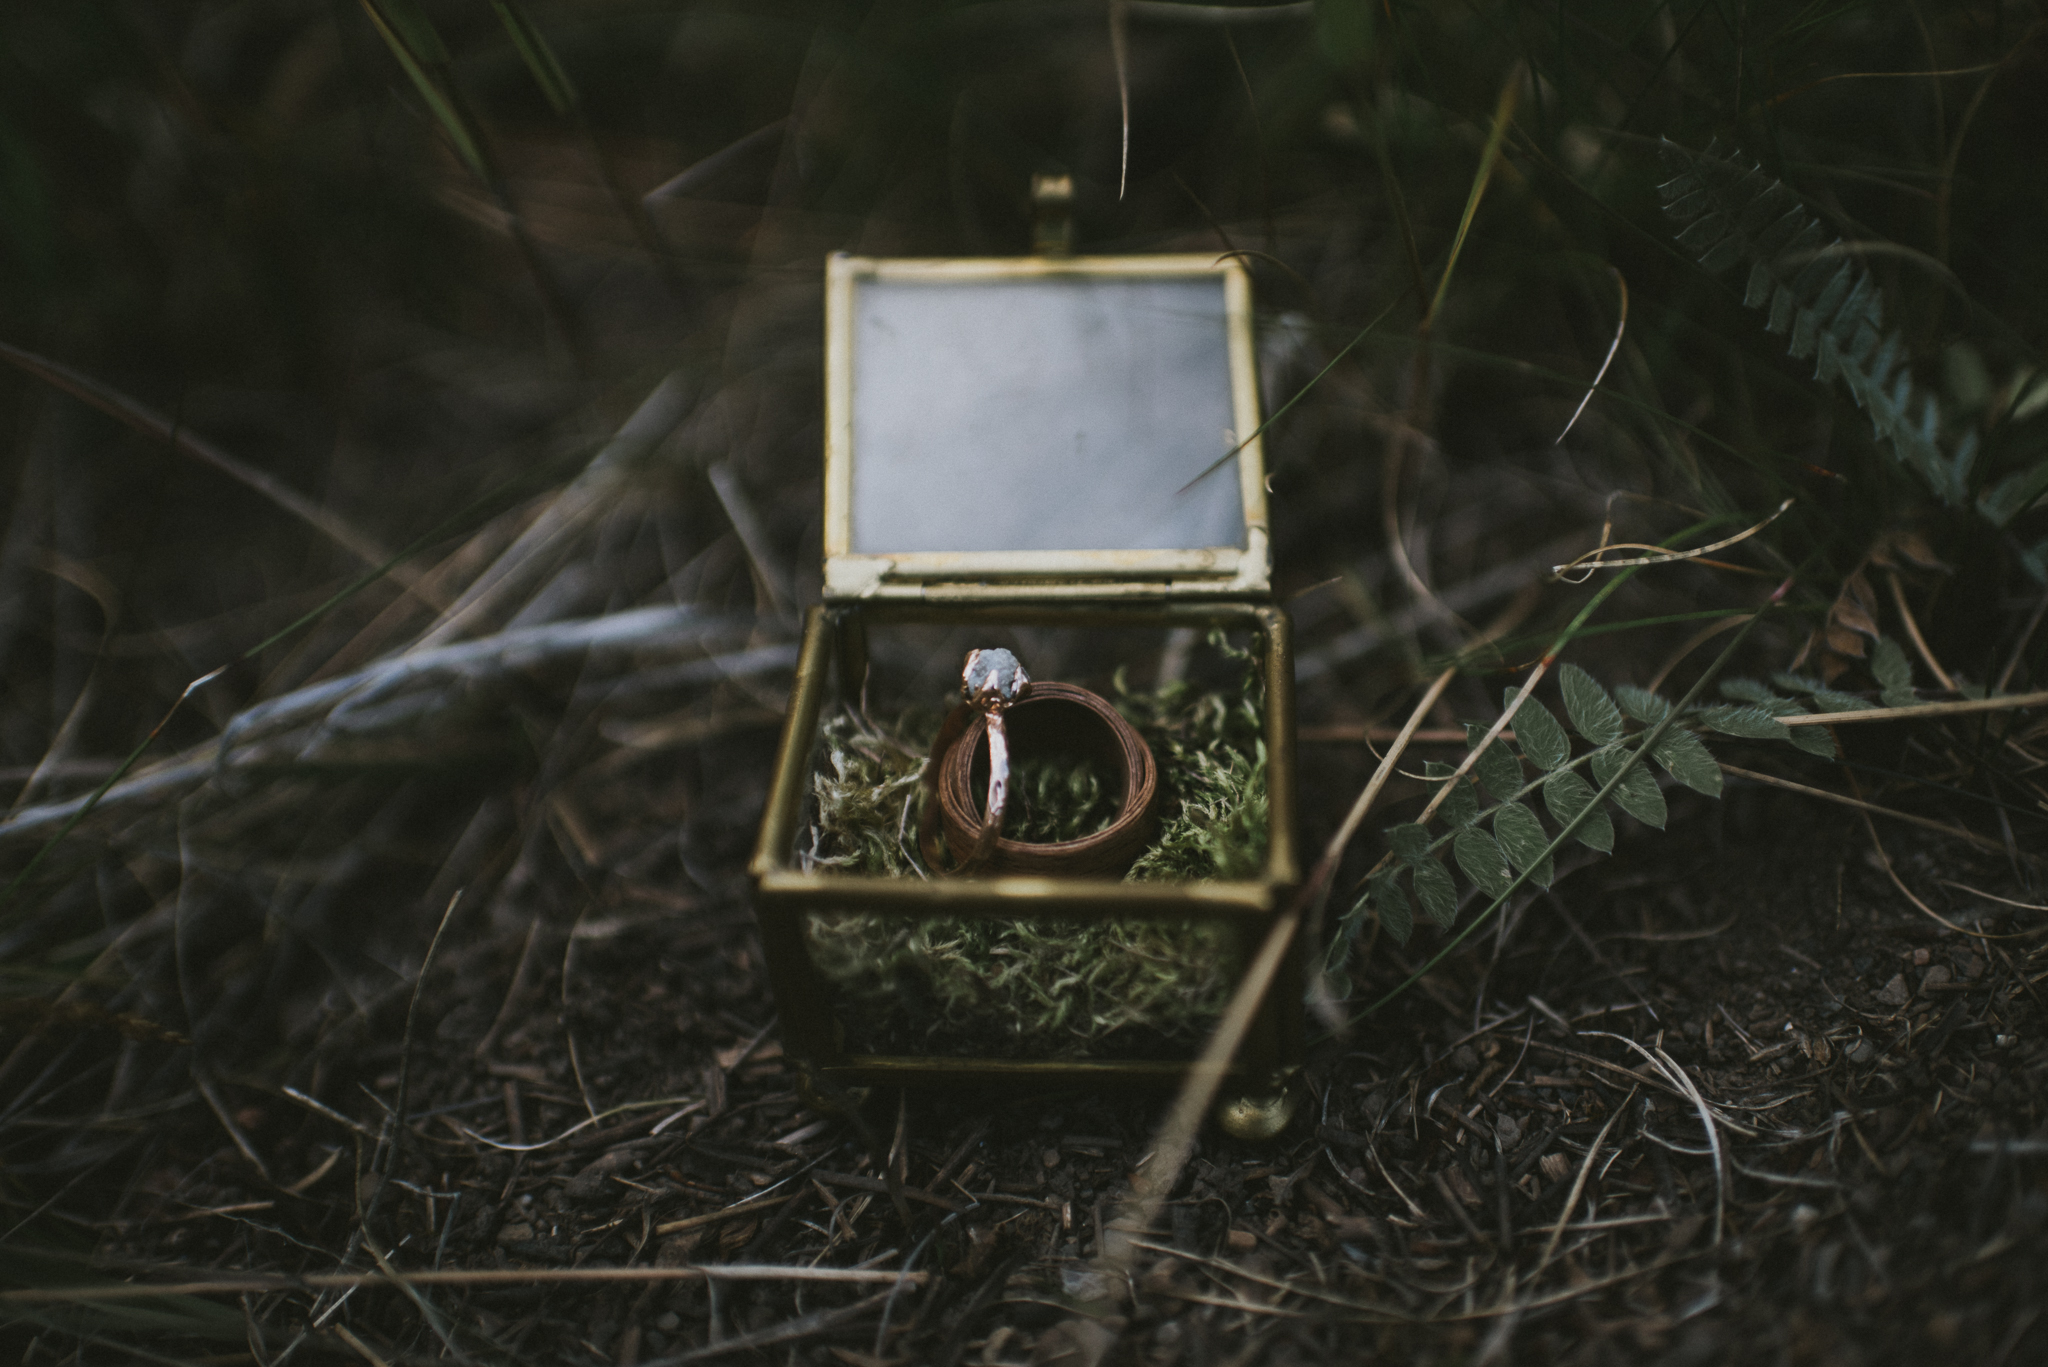 wedding engagement ring glass box forest kananaskis